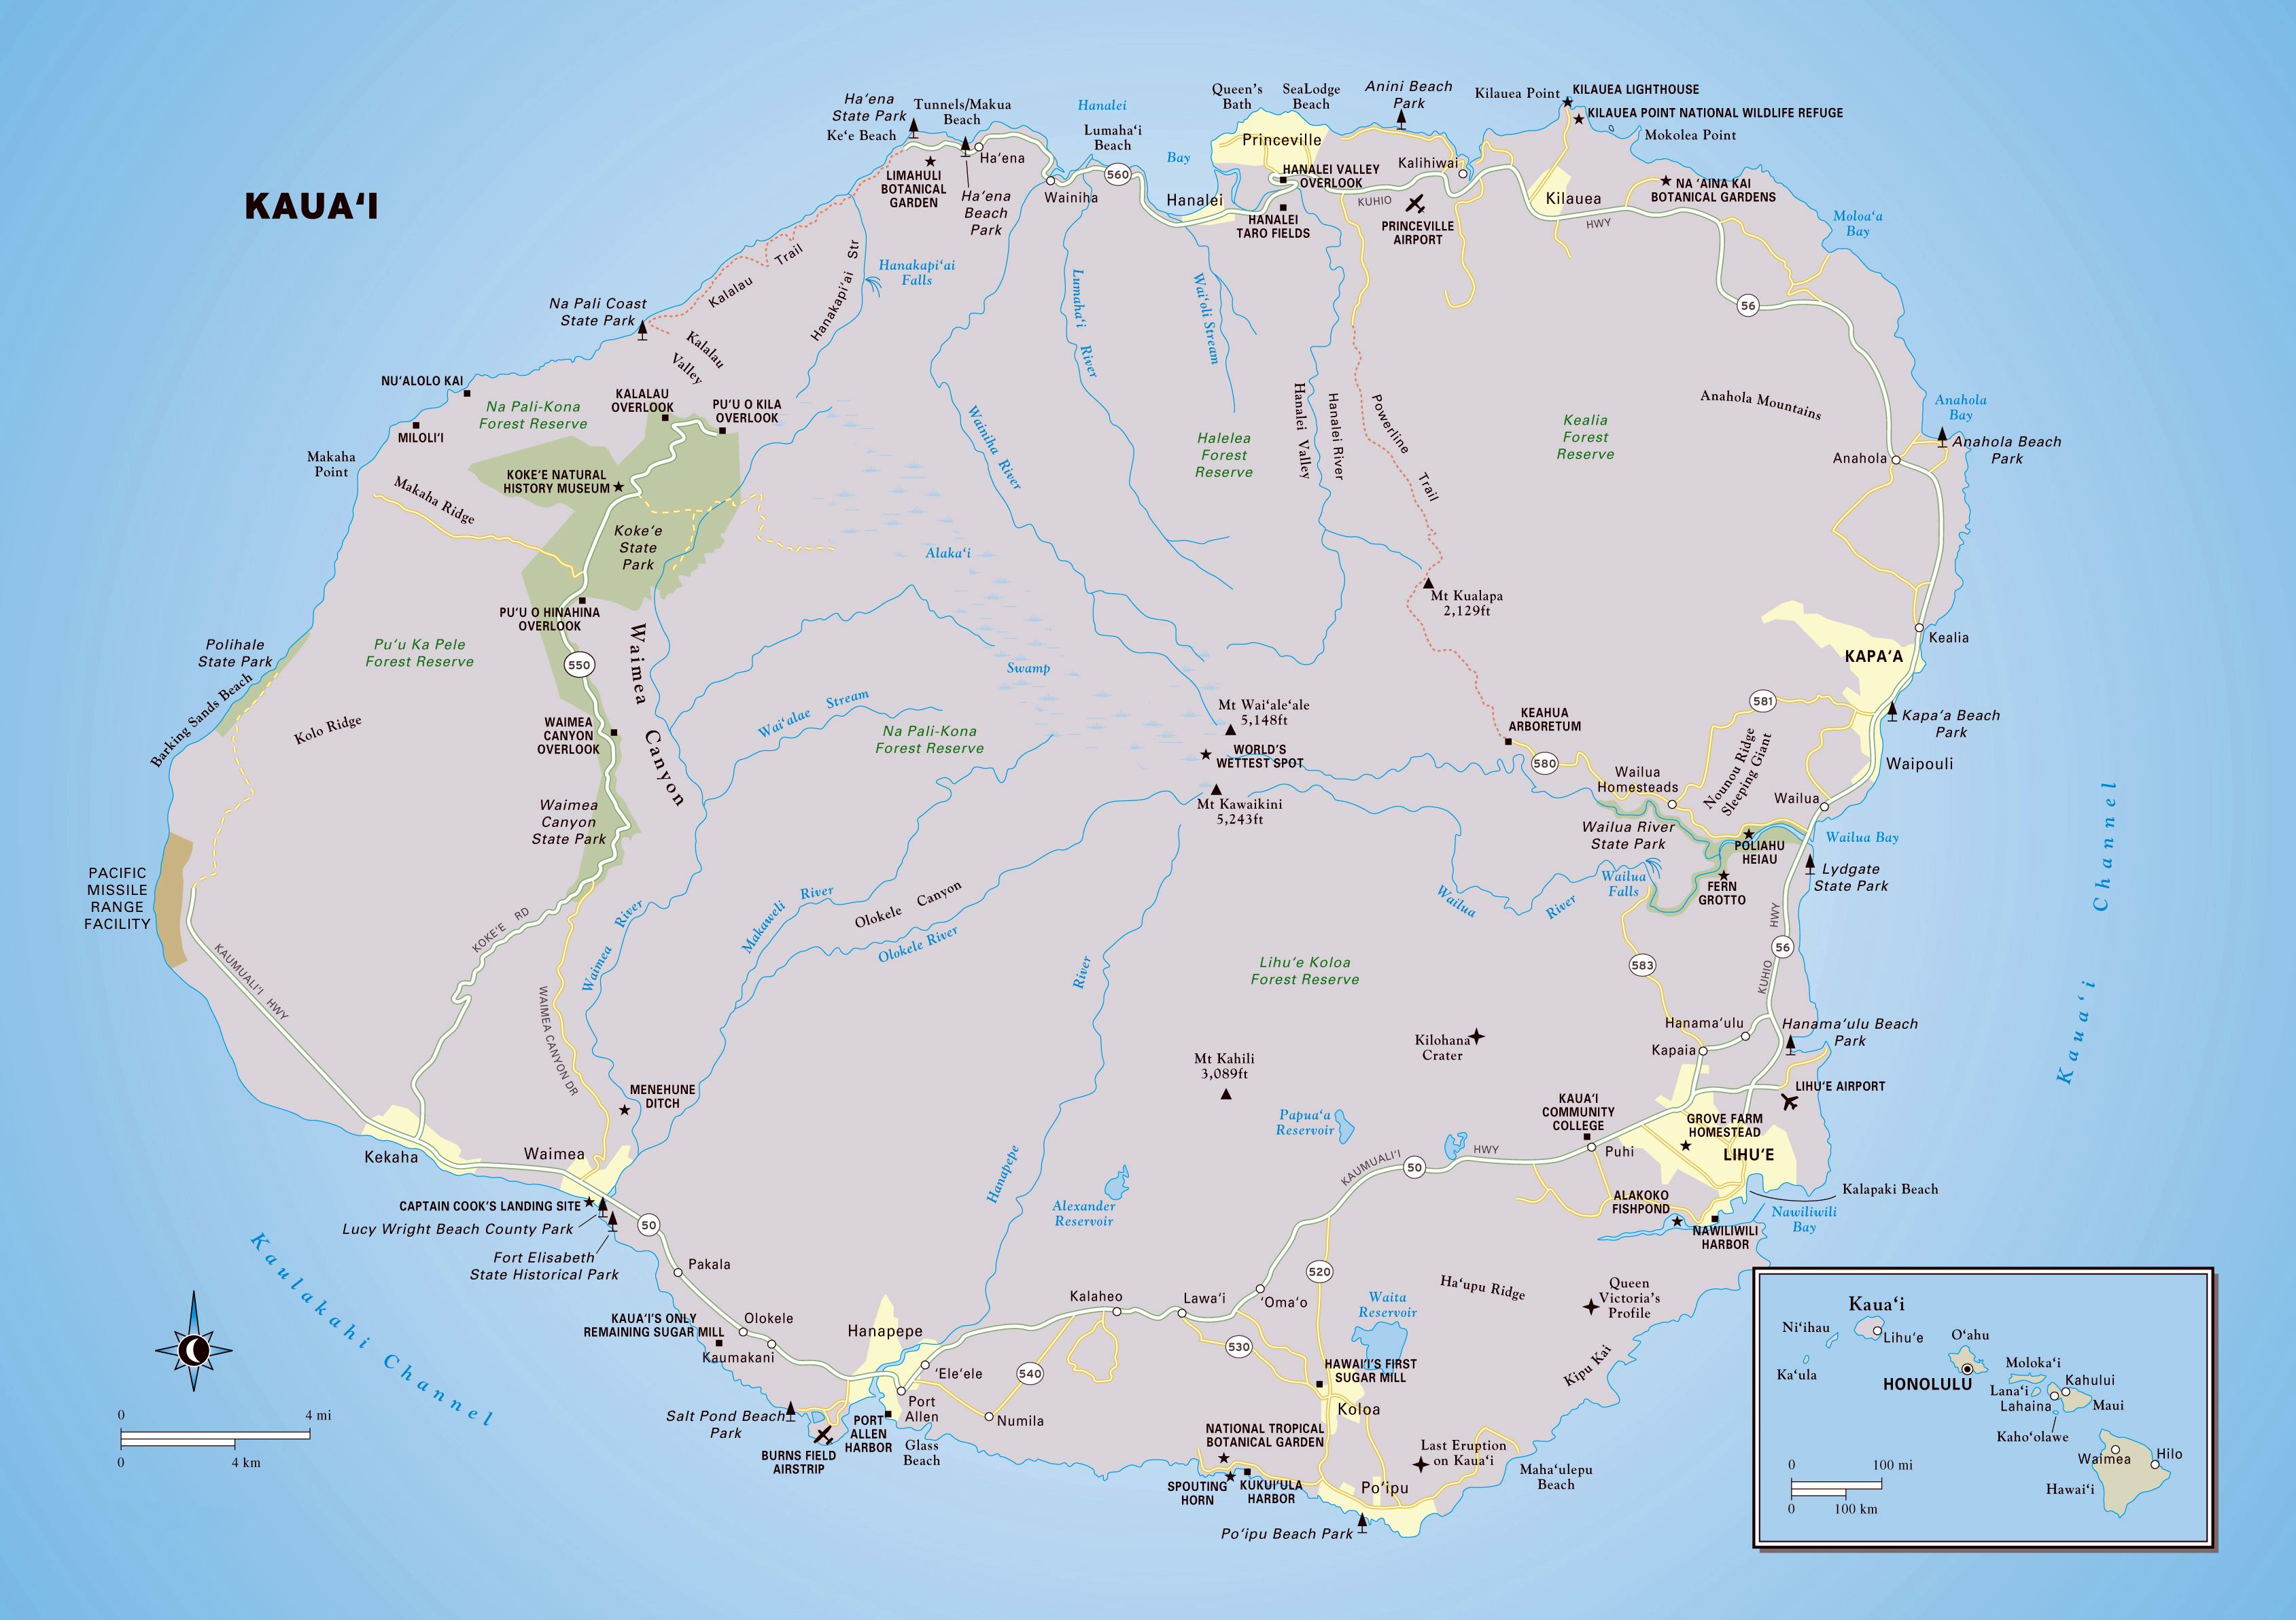 Large Kauai Island Maps for Free Download and Print | High ... on molokai island map, corpus christi island map, kauai hawaii, kihei island map, kauai places to visit, rome island map, new orleans island map, oahu map, kilauea map, lanai island map, mississippi island map, oregon island map, connecticut island map, ohio island map, lihue island map, maui island map, virginia island map, myrtle beach island map, san jose island map, hawaii map,